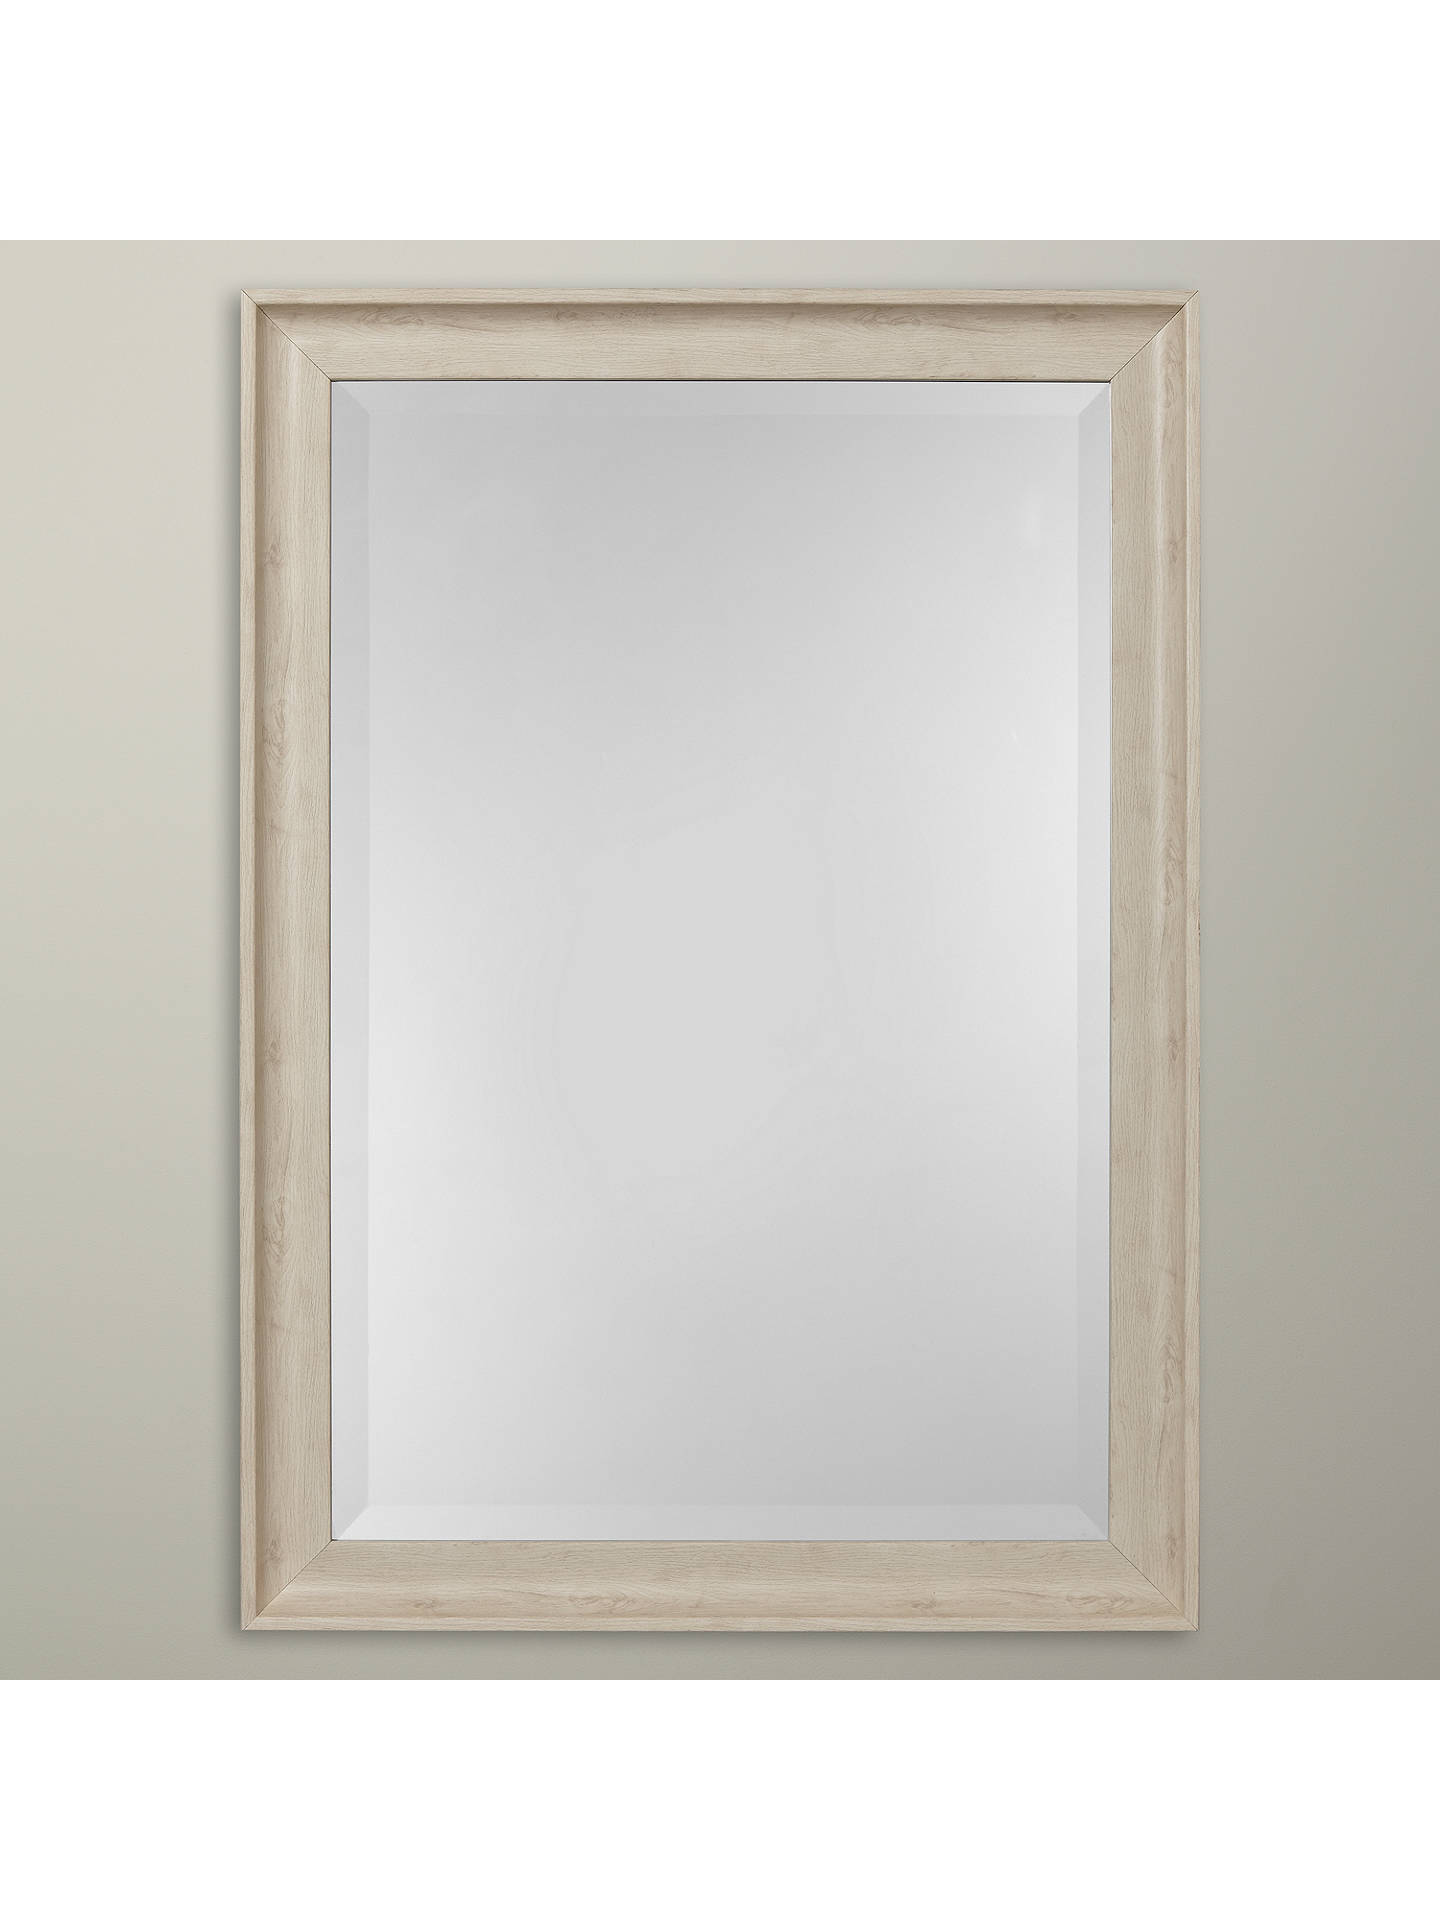 7144a1e6f053 Buy John Lewis Coastal White Texture Wall Mirror, 50 x 70cm Online at  johnlewis.